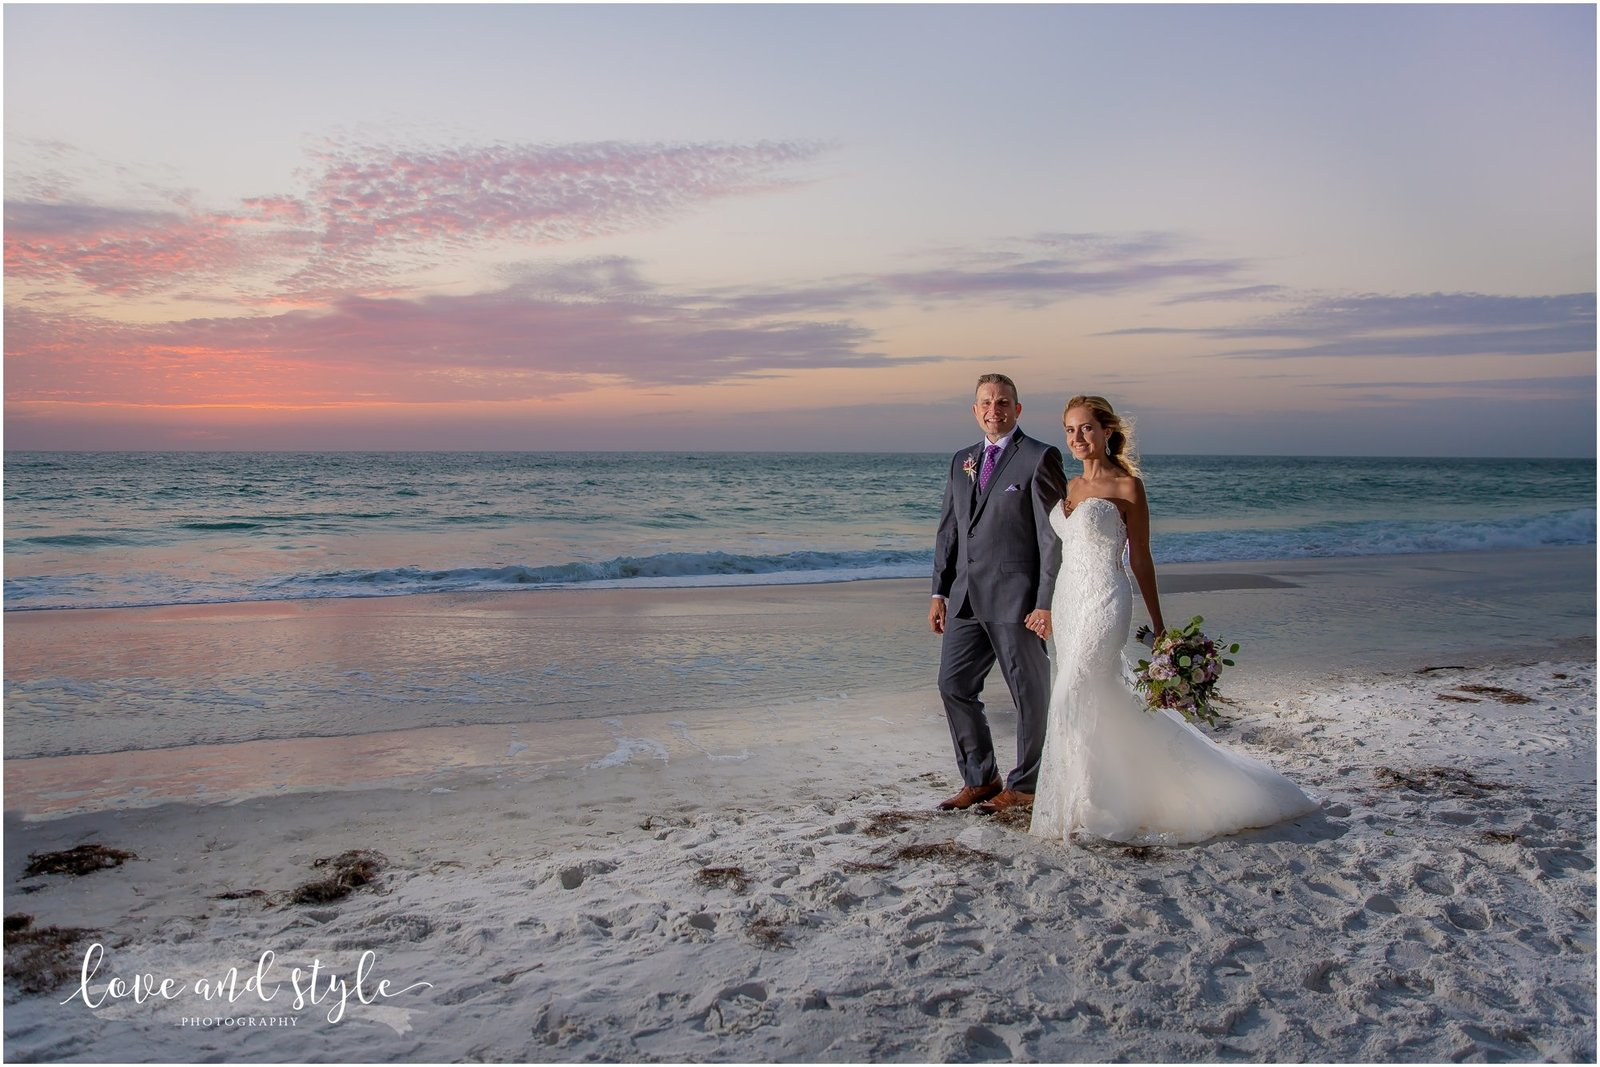 Bride and Groom walking on the beach at sunset in front of The Beach House on Anna Maria Island